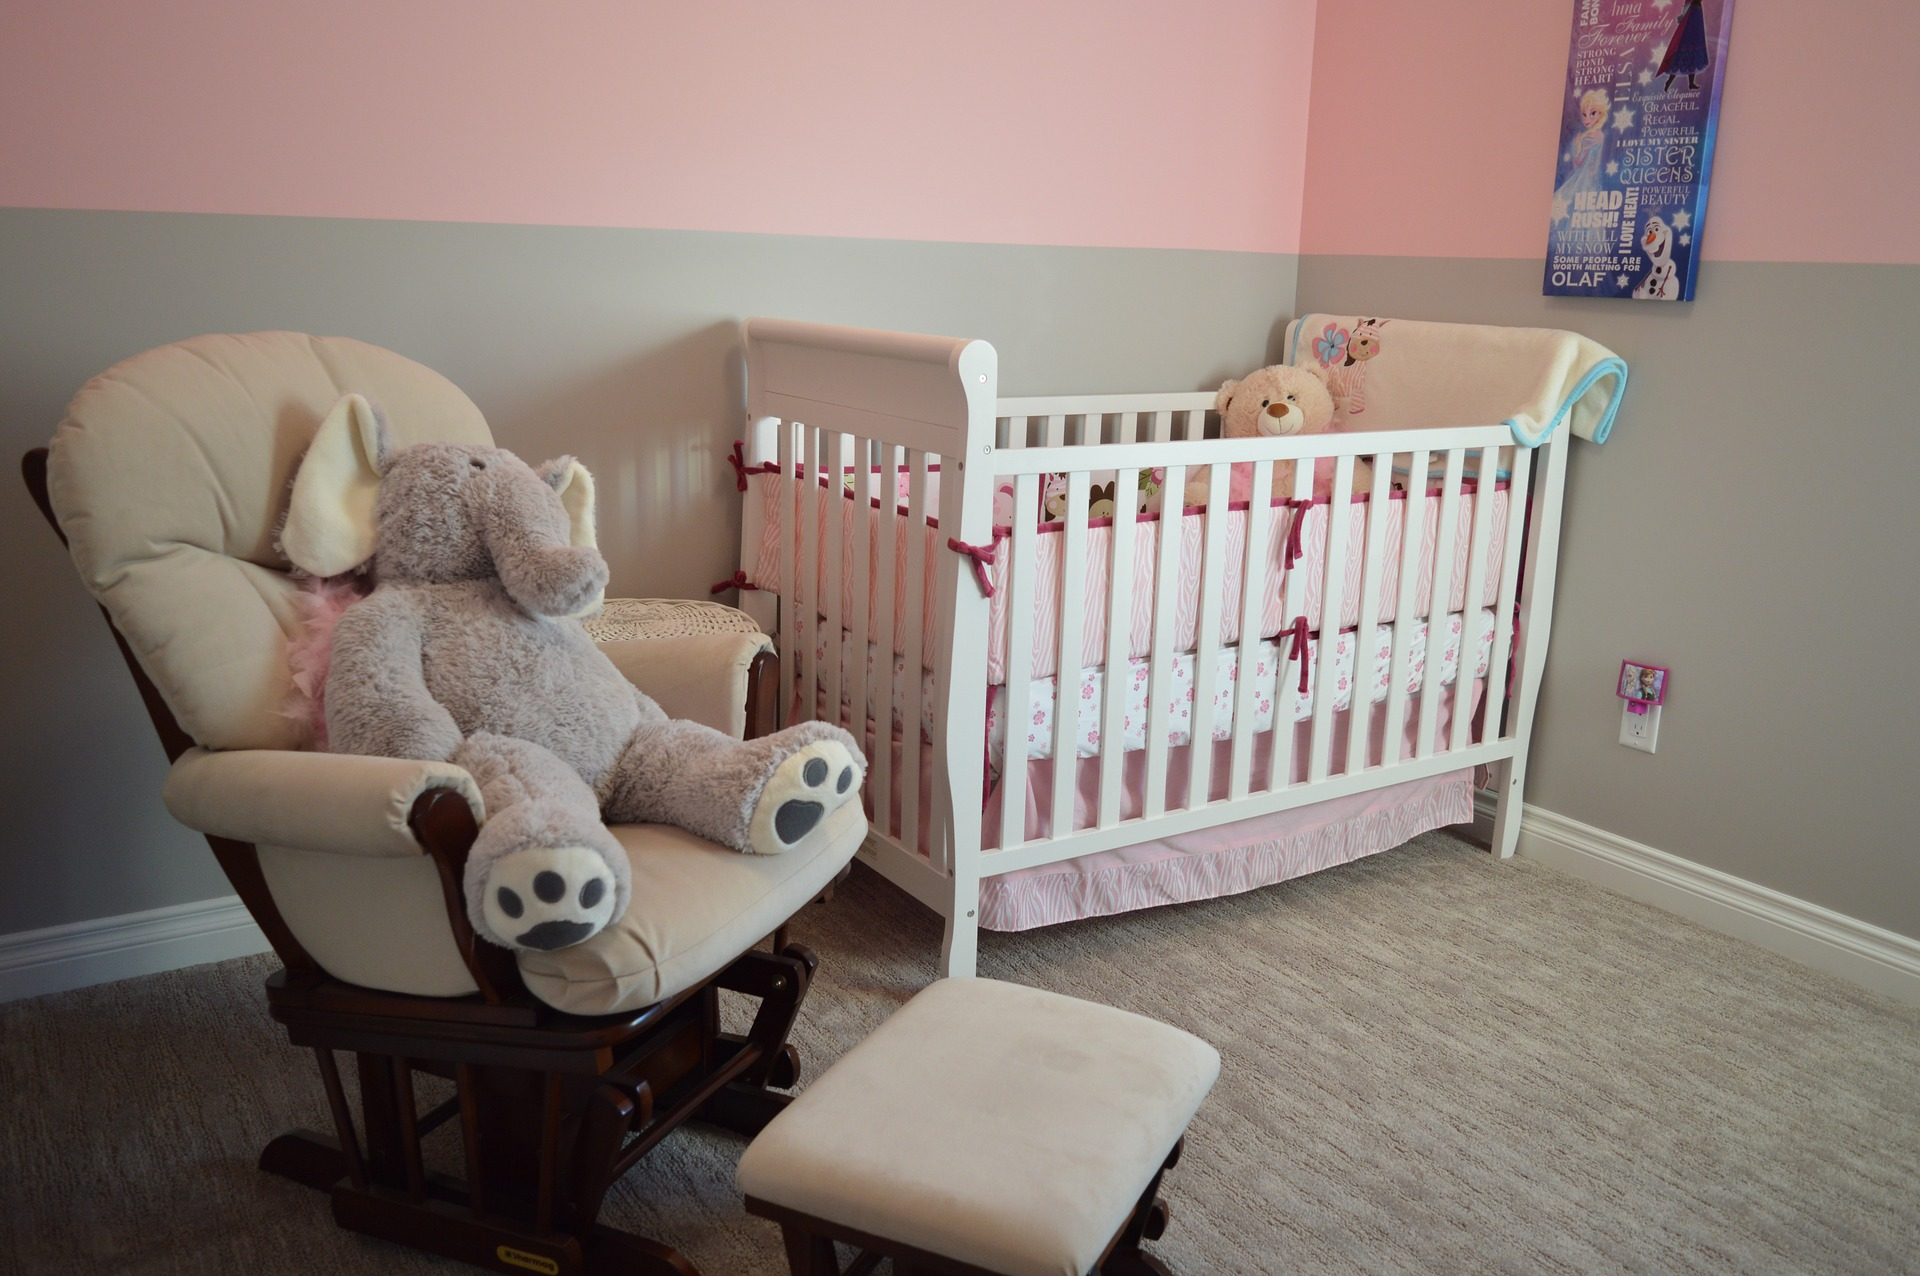 A nursing chair and a baby's cot in a nursery